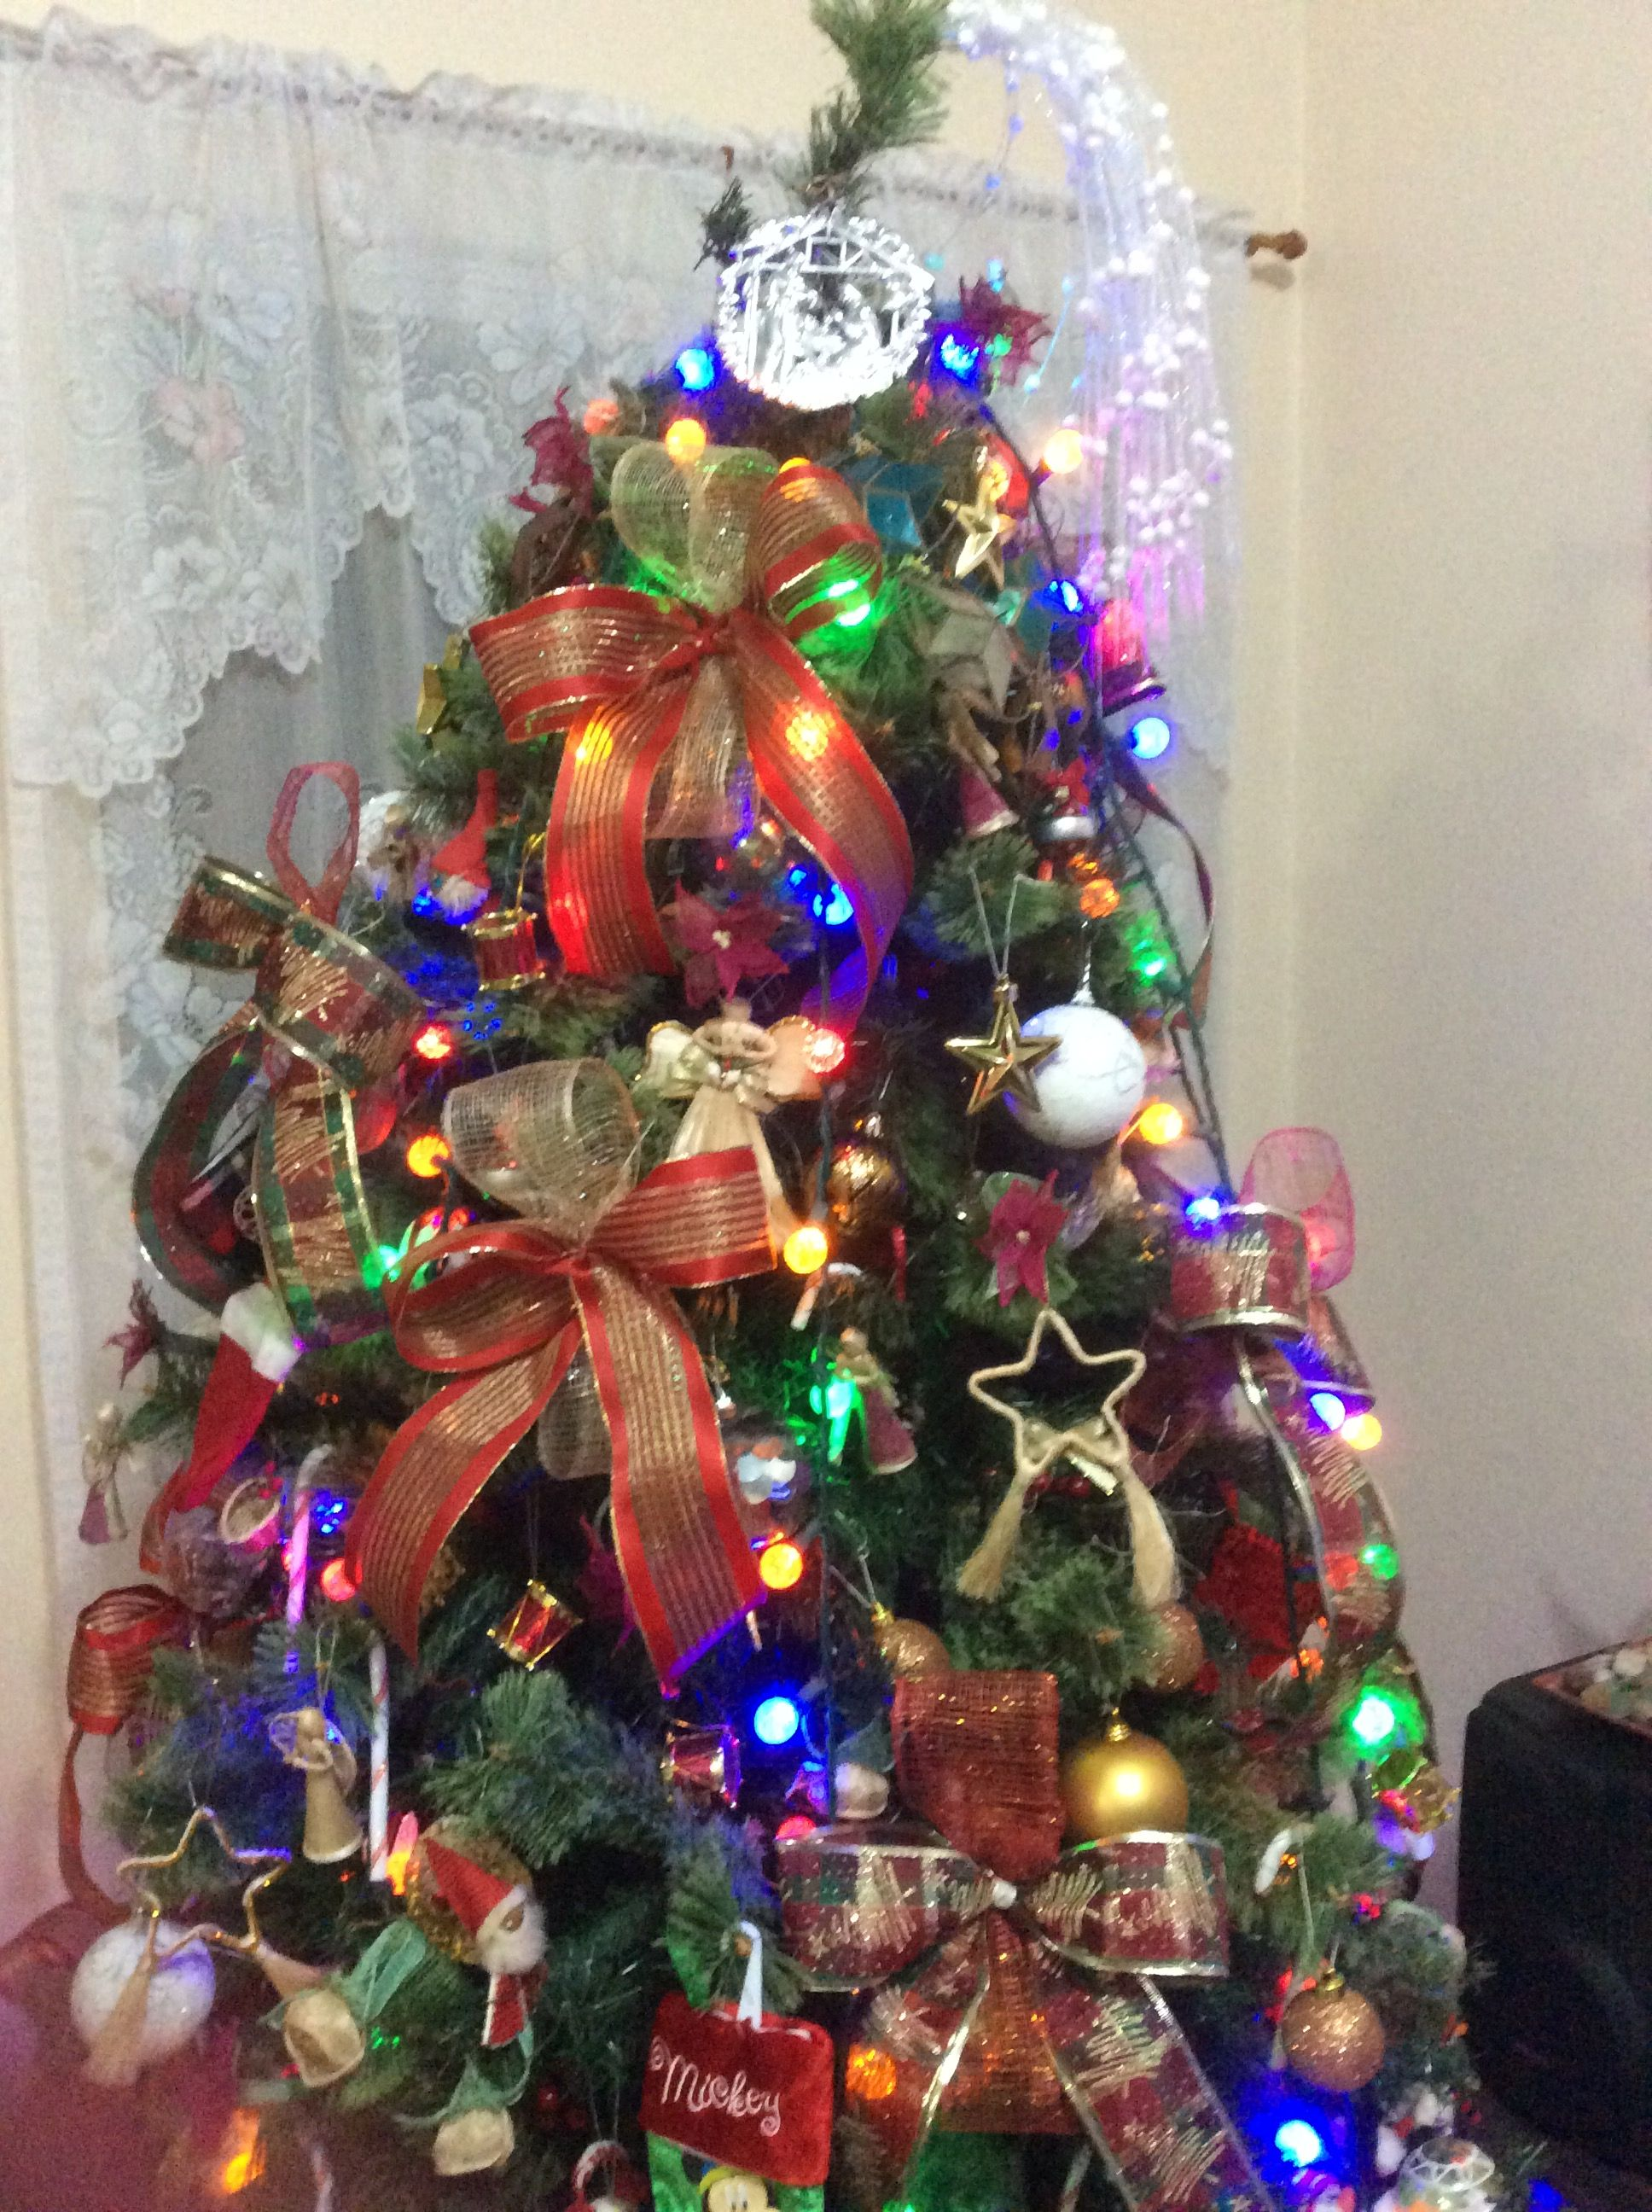 My Philippines Native Christmas Tree Christmas Tree Living Room Decor Inspiration Paper Decorations